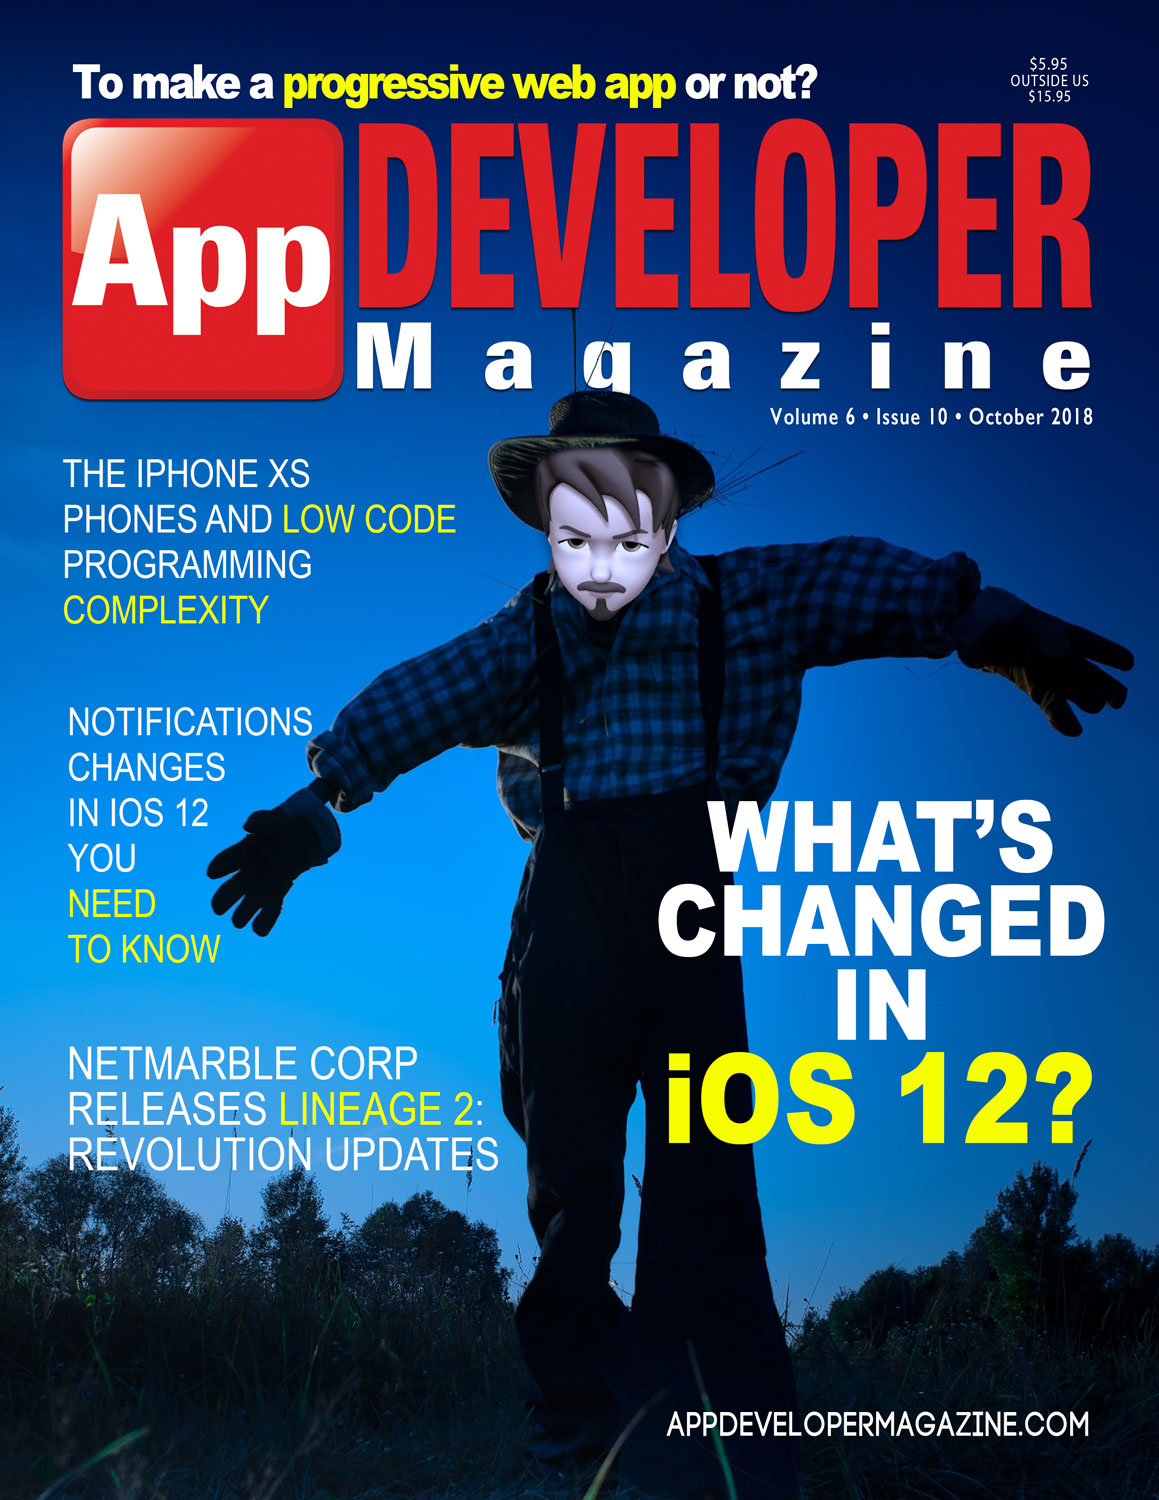 Mobile App Developer Magazine | App Developer Magazine